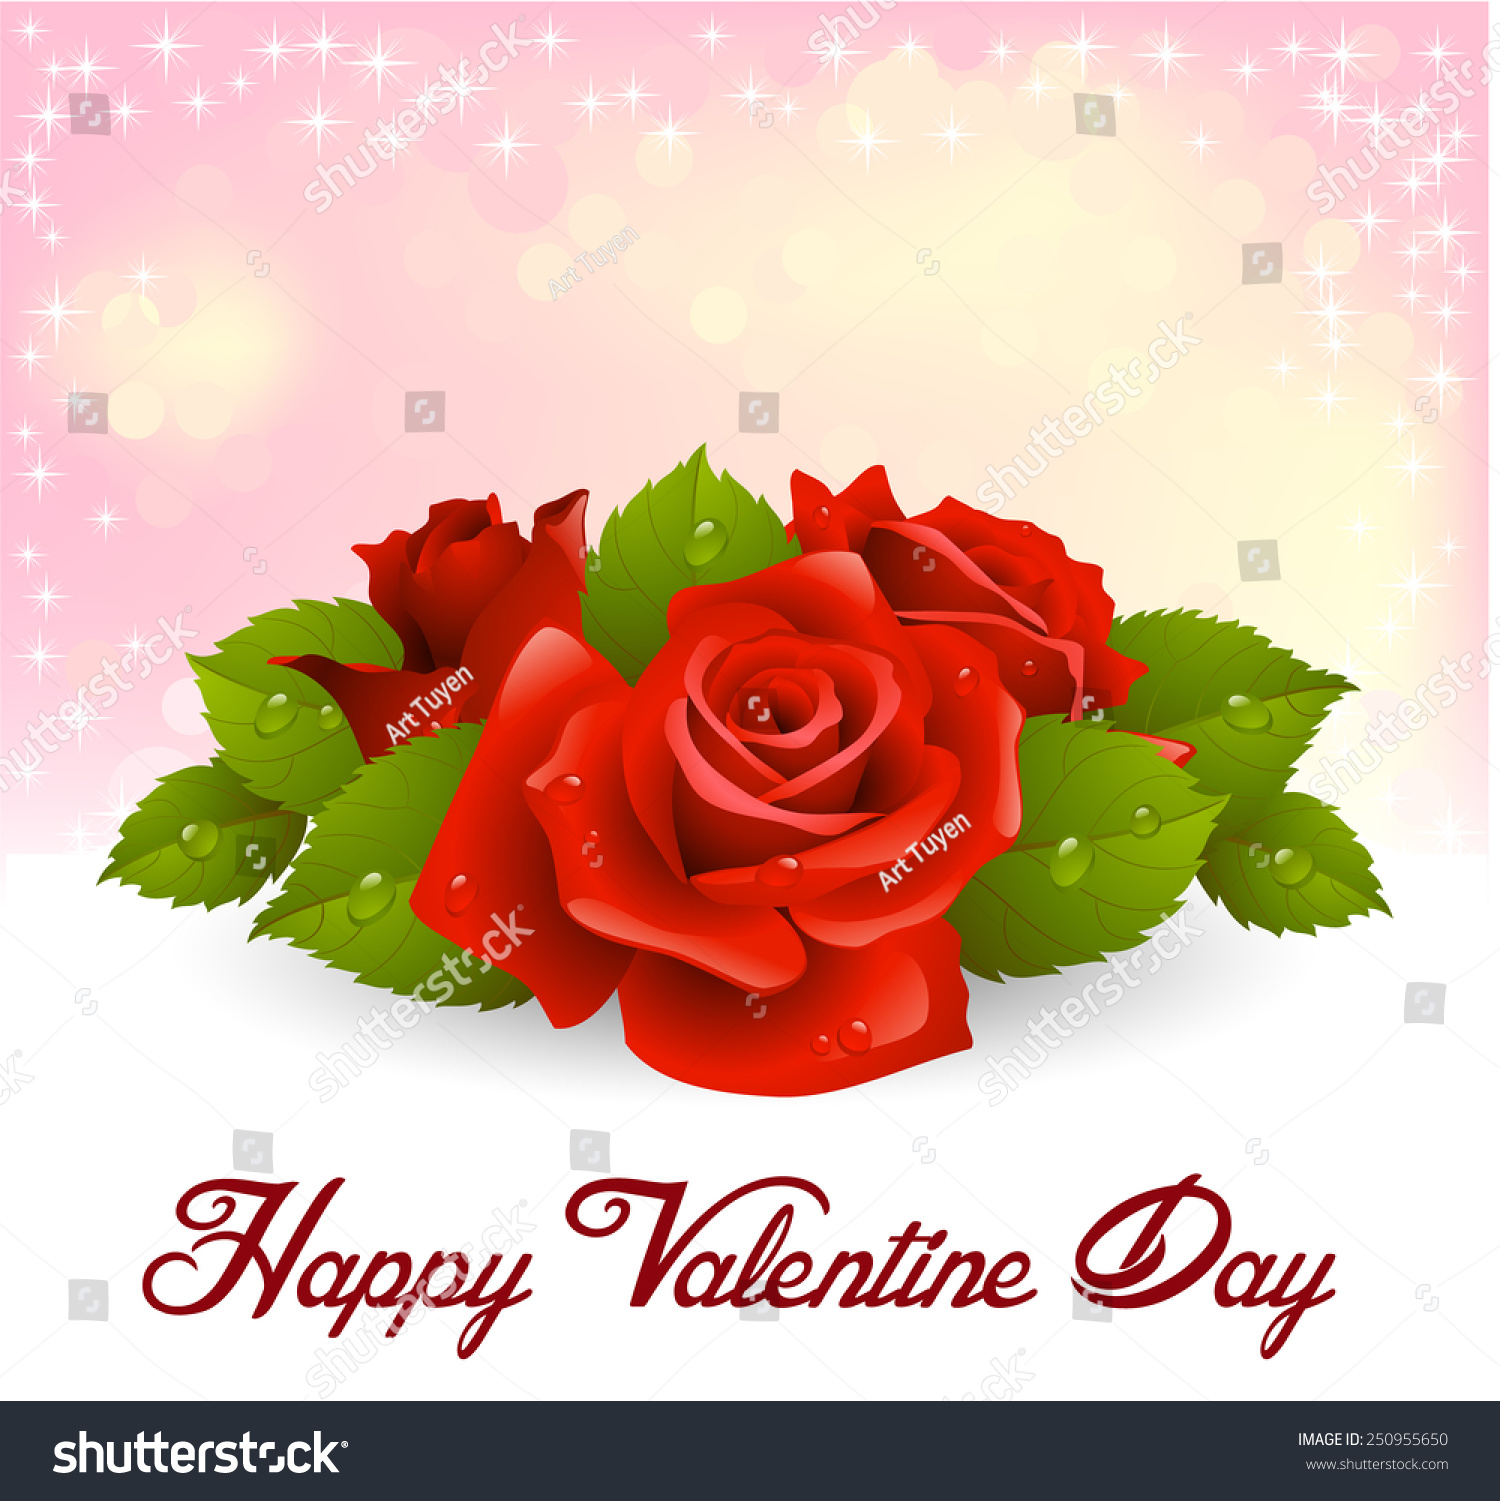 Valentines day vector beautiful flowers stock vector 250955650 valentines day vector of beautiful flowers izmirmasajfo